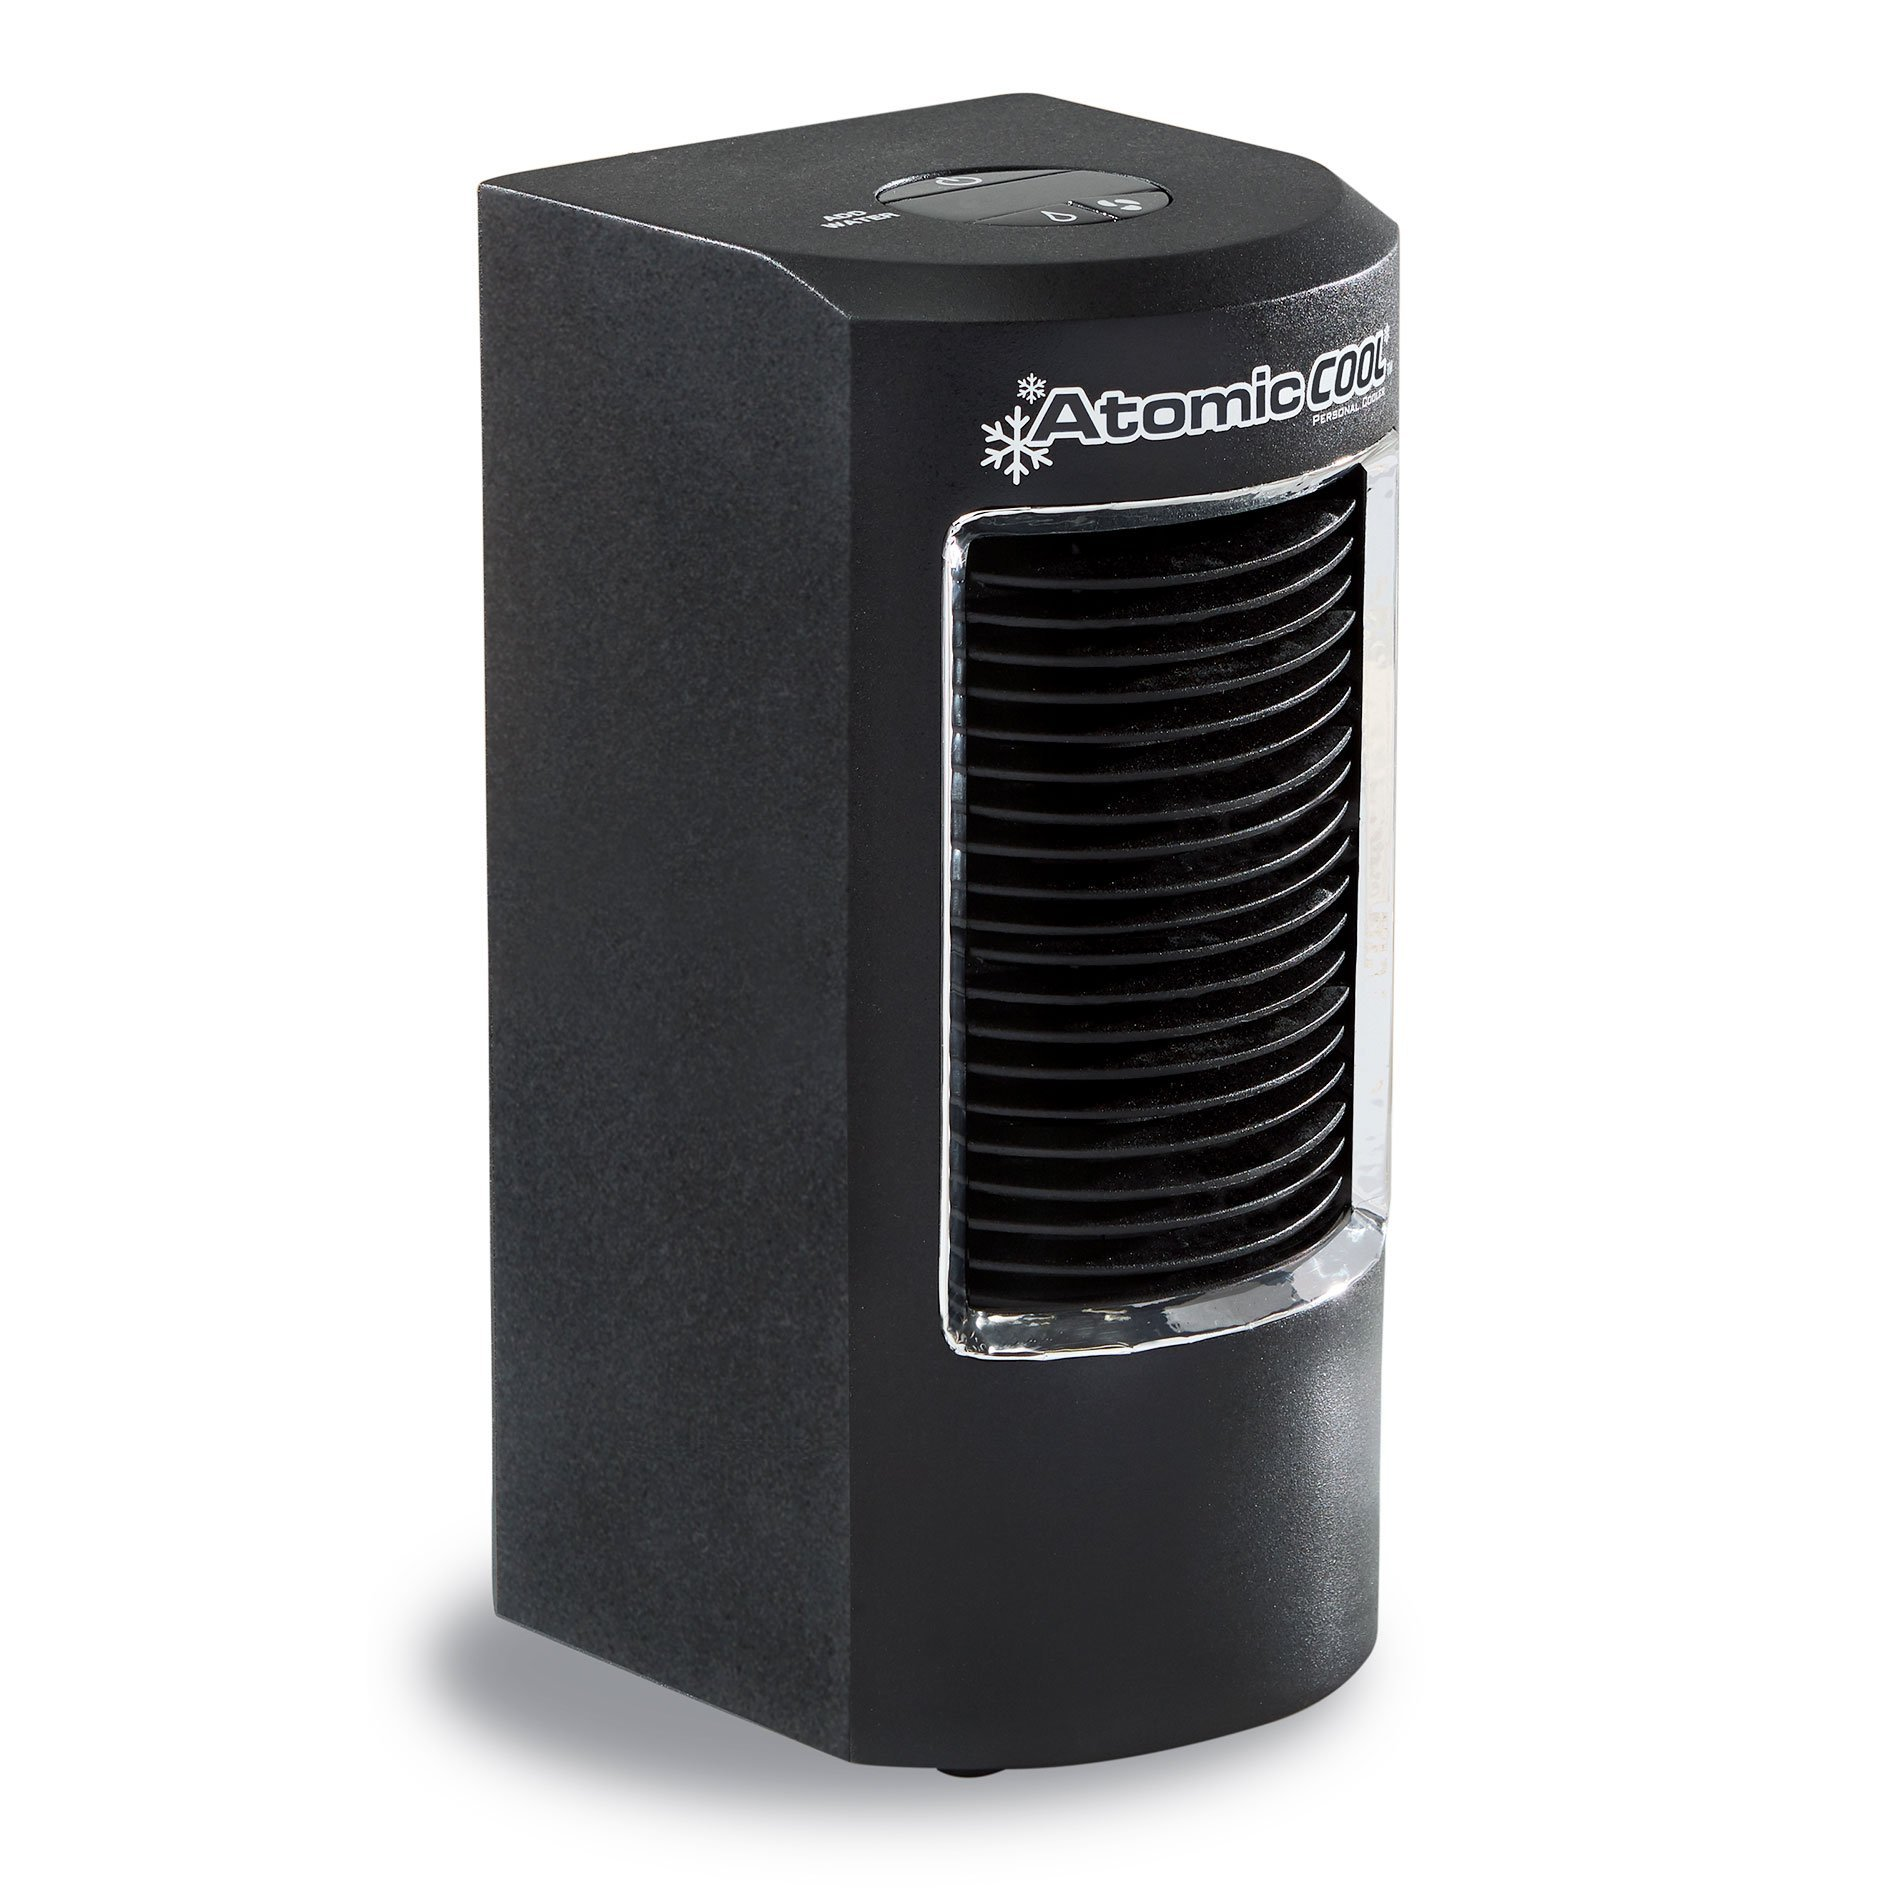 Atomic Cool Ultra-Portable Compact Personal Space Cooler Original by BulbHead, Evaporative Cooler Converts Hot Air to Cool Air